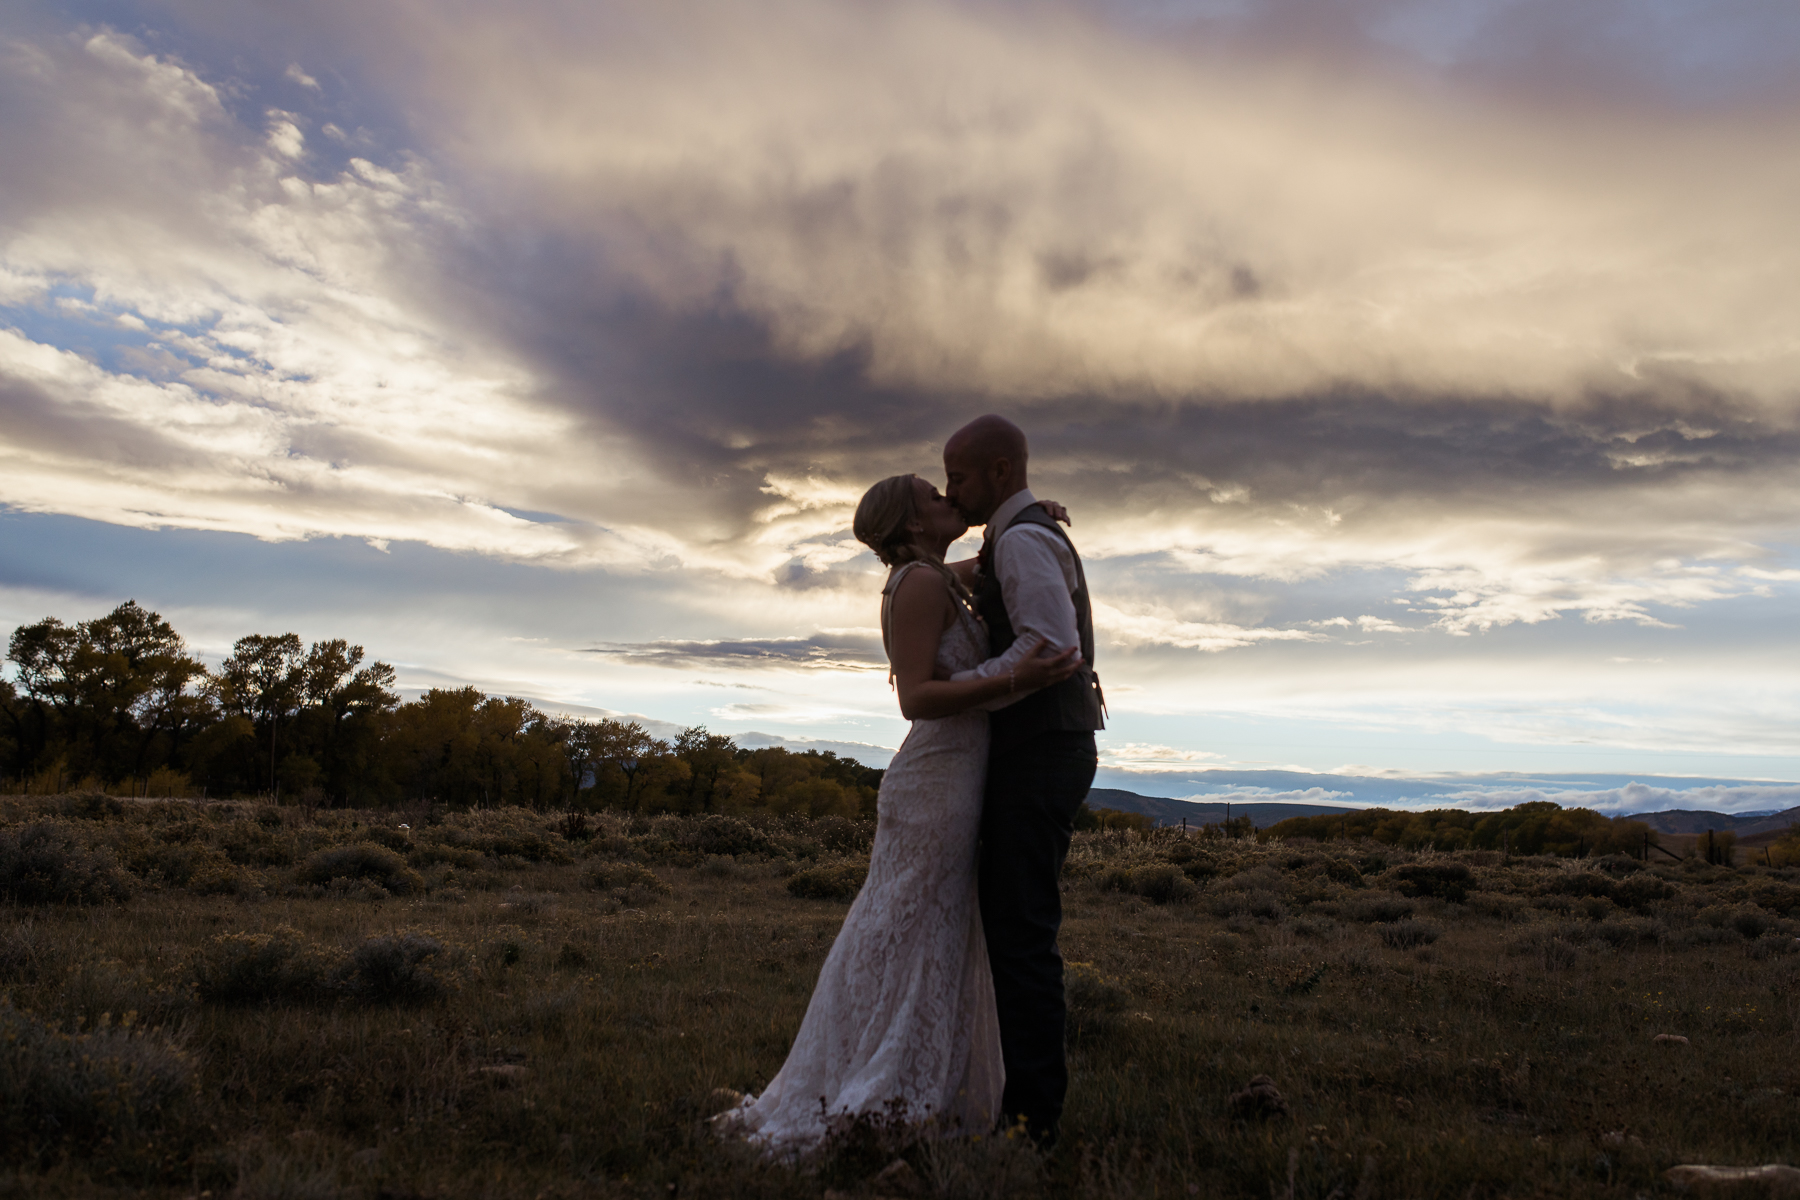 Vee Bar Ranch Wedding in Wyoming by Megan Lee Photography